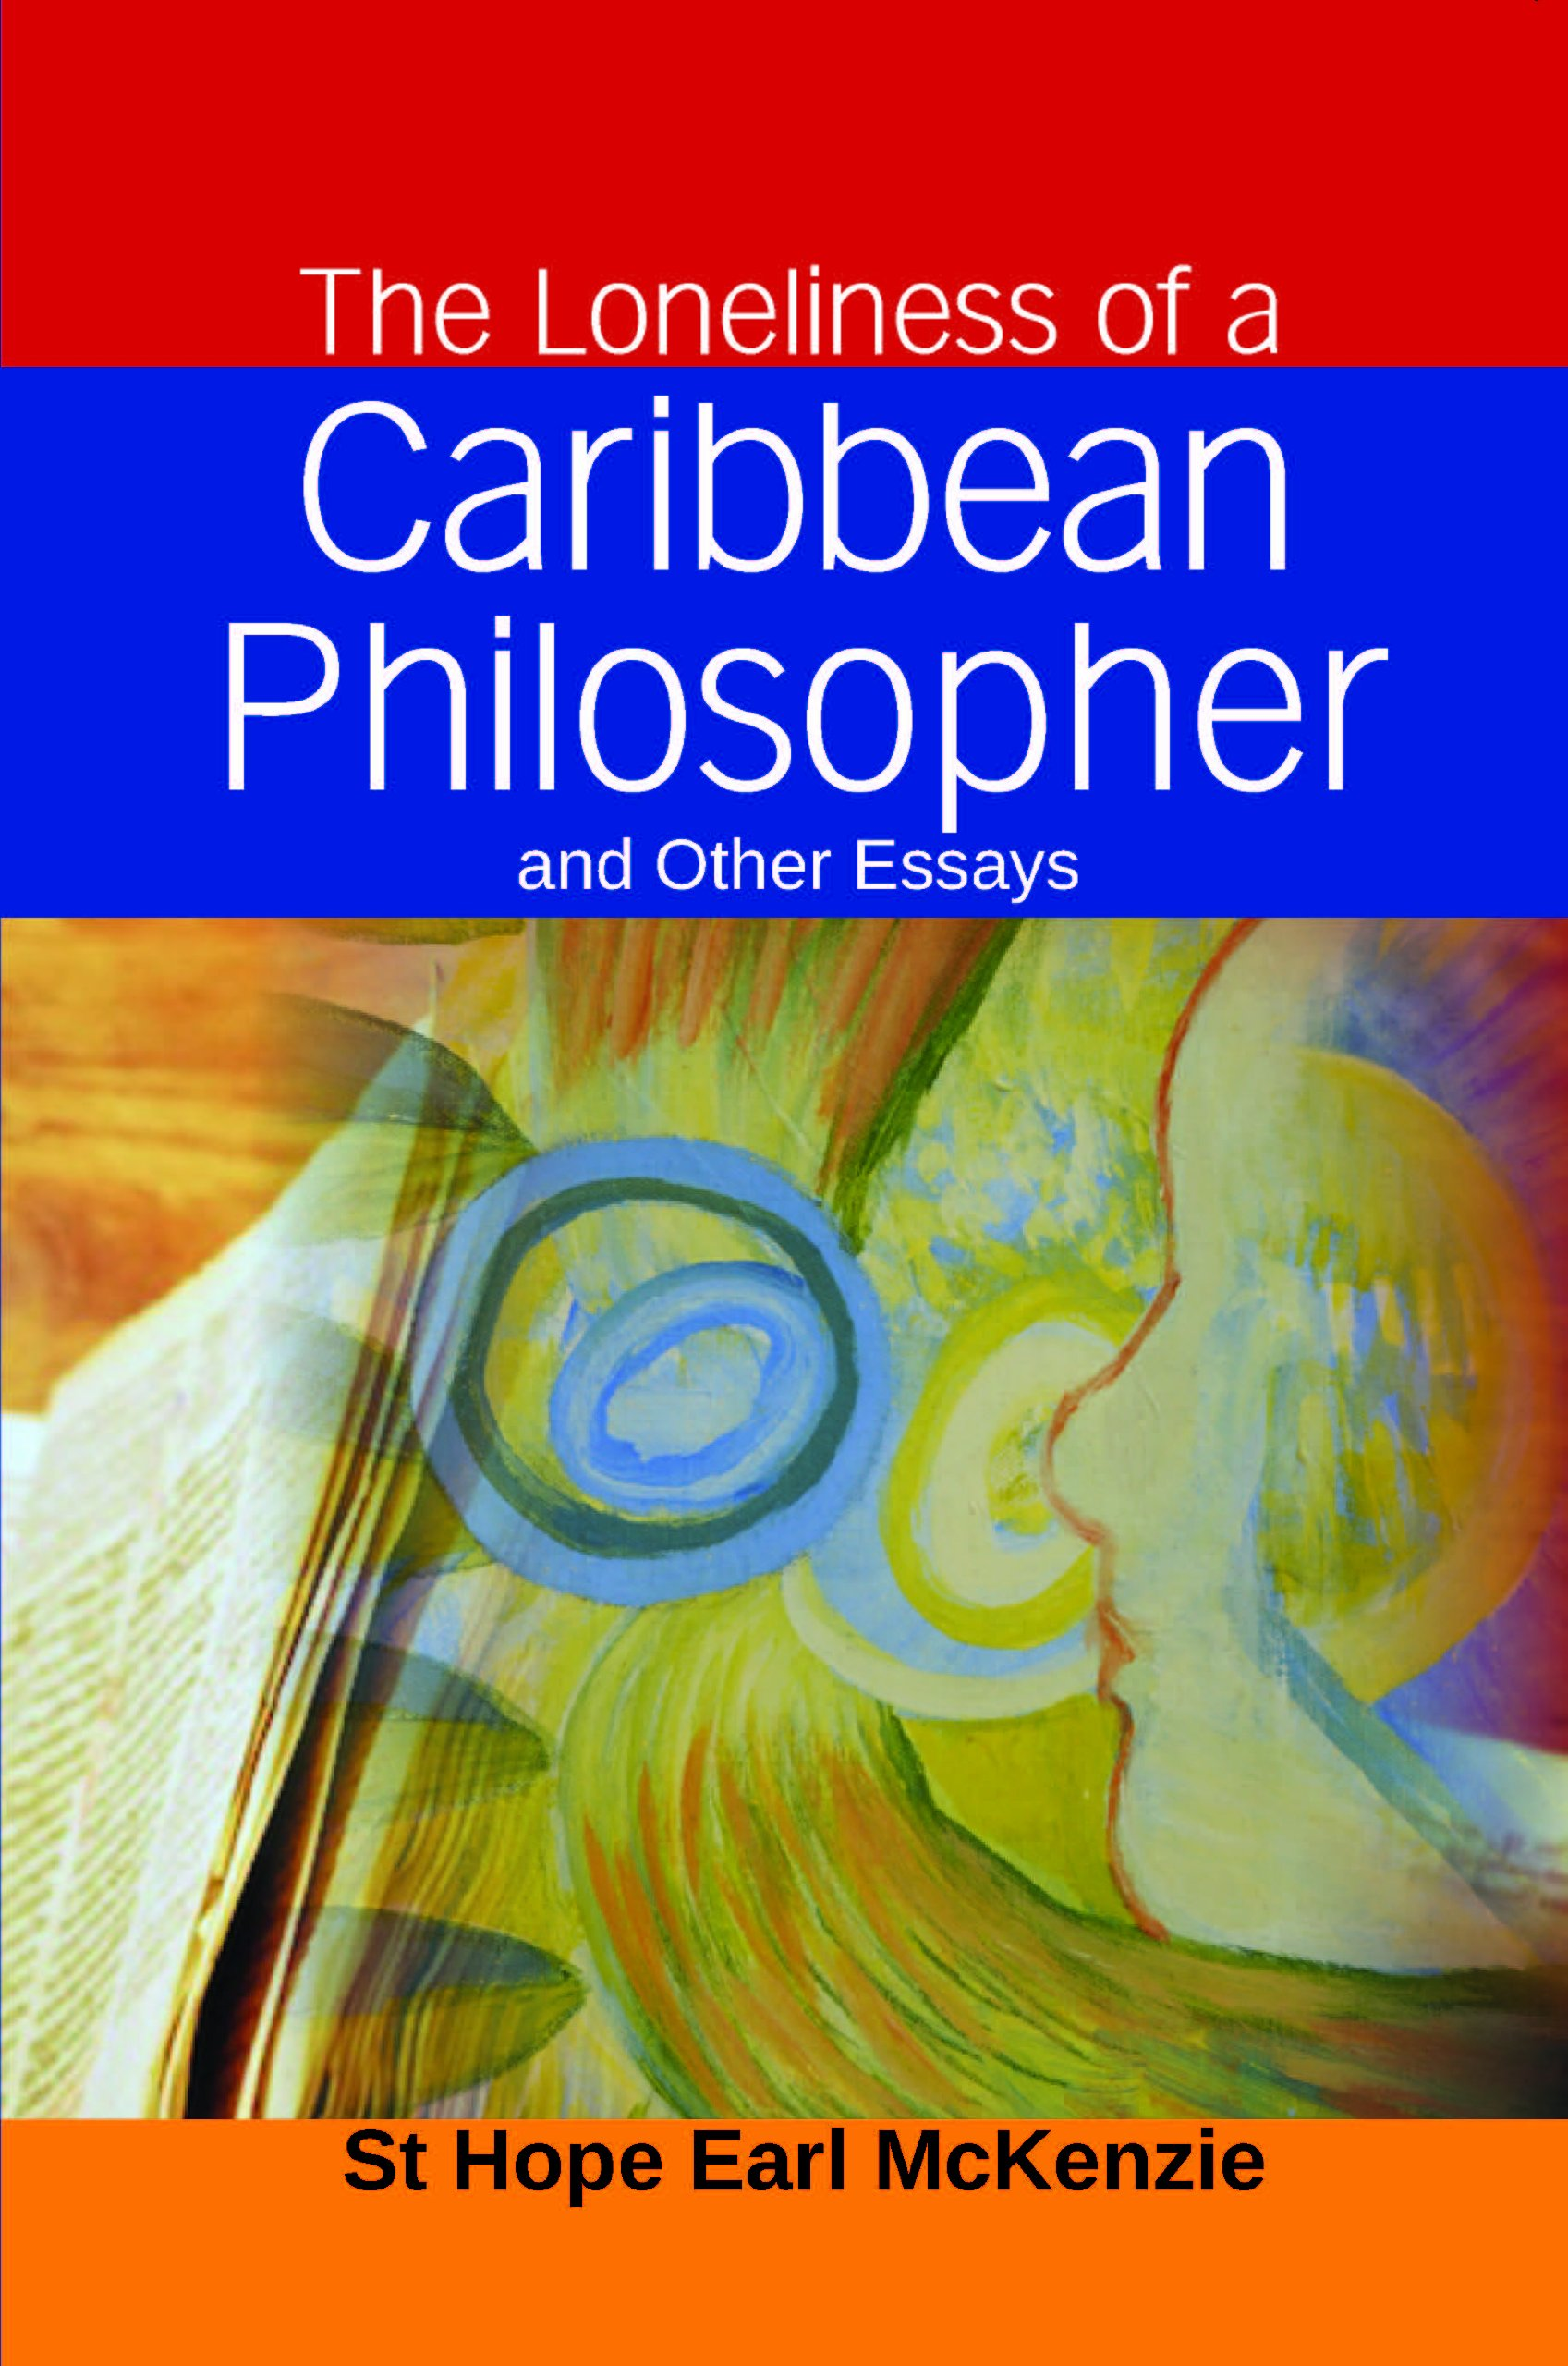 High School Essay Help The Loneliness Of A Caribbean Philosopher And Other Essays Earl Mckenzie   Amazoncom Books Great Gatsby Essay Thesis also Essay On Cow In English The Loneliness Of A Caribbean Philosopher And Other Essays Earl  Sample Of English Essay